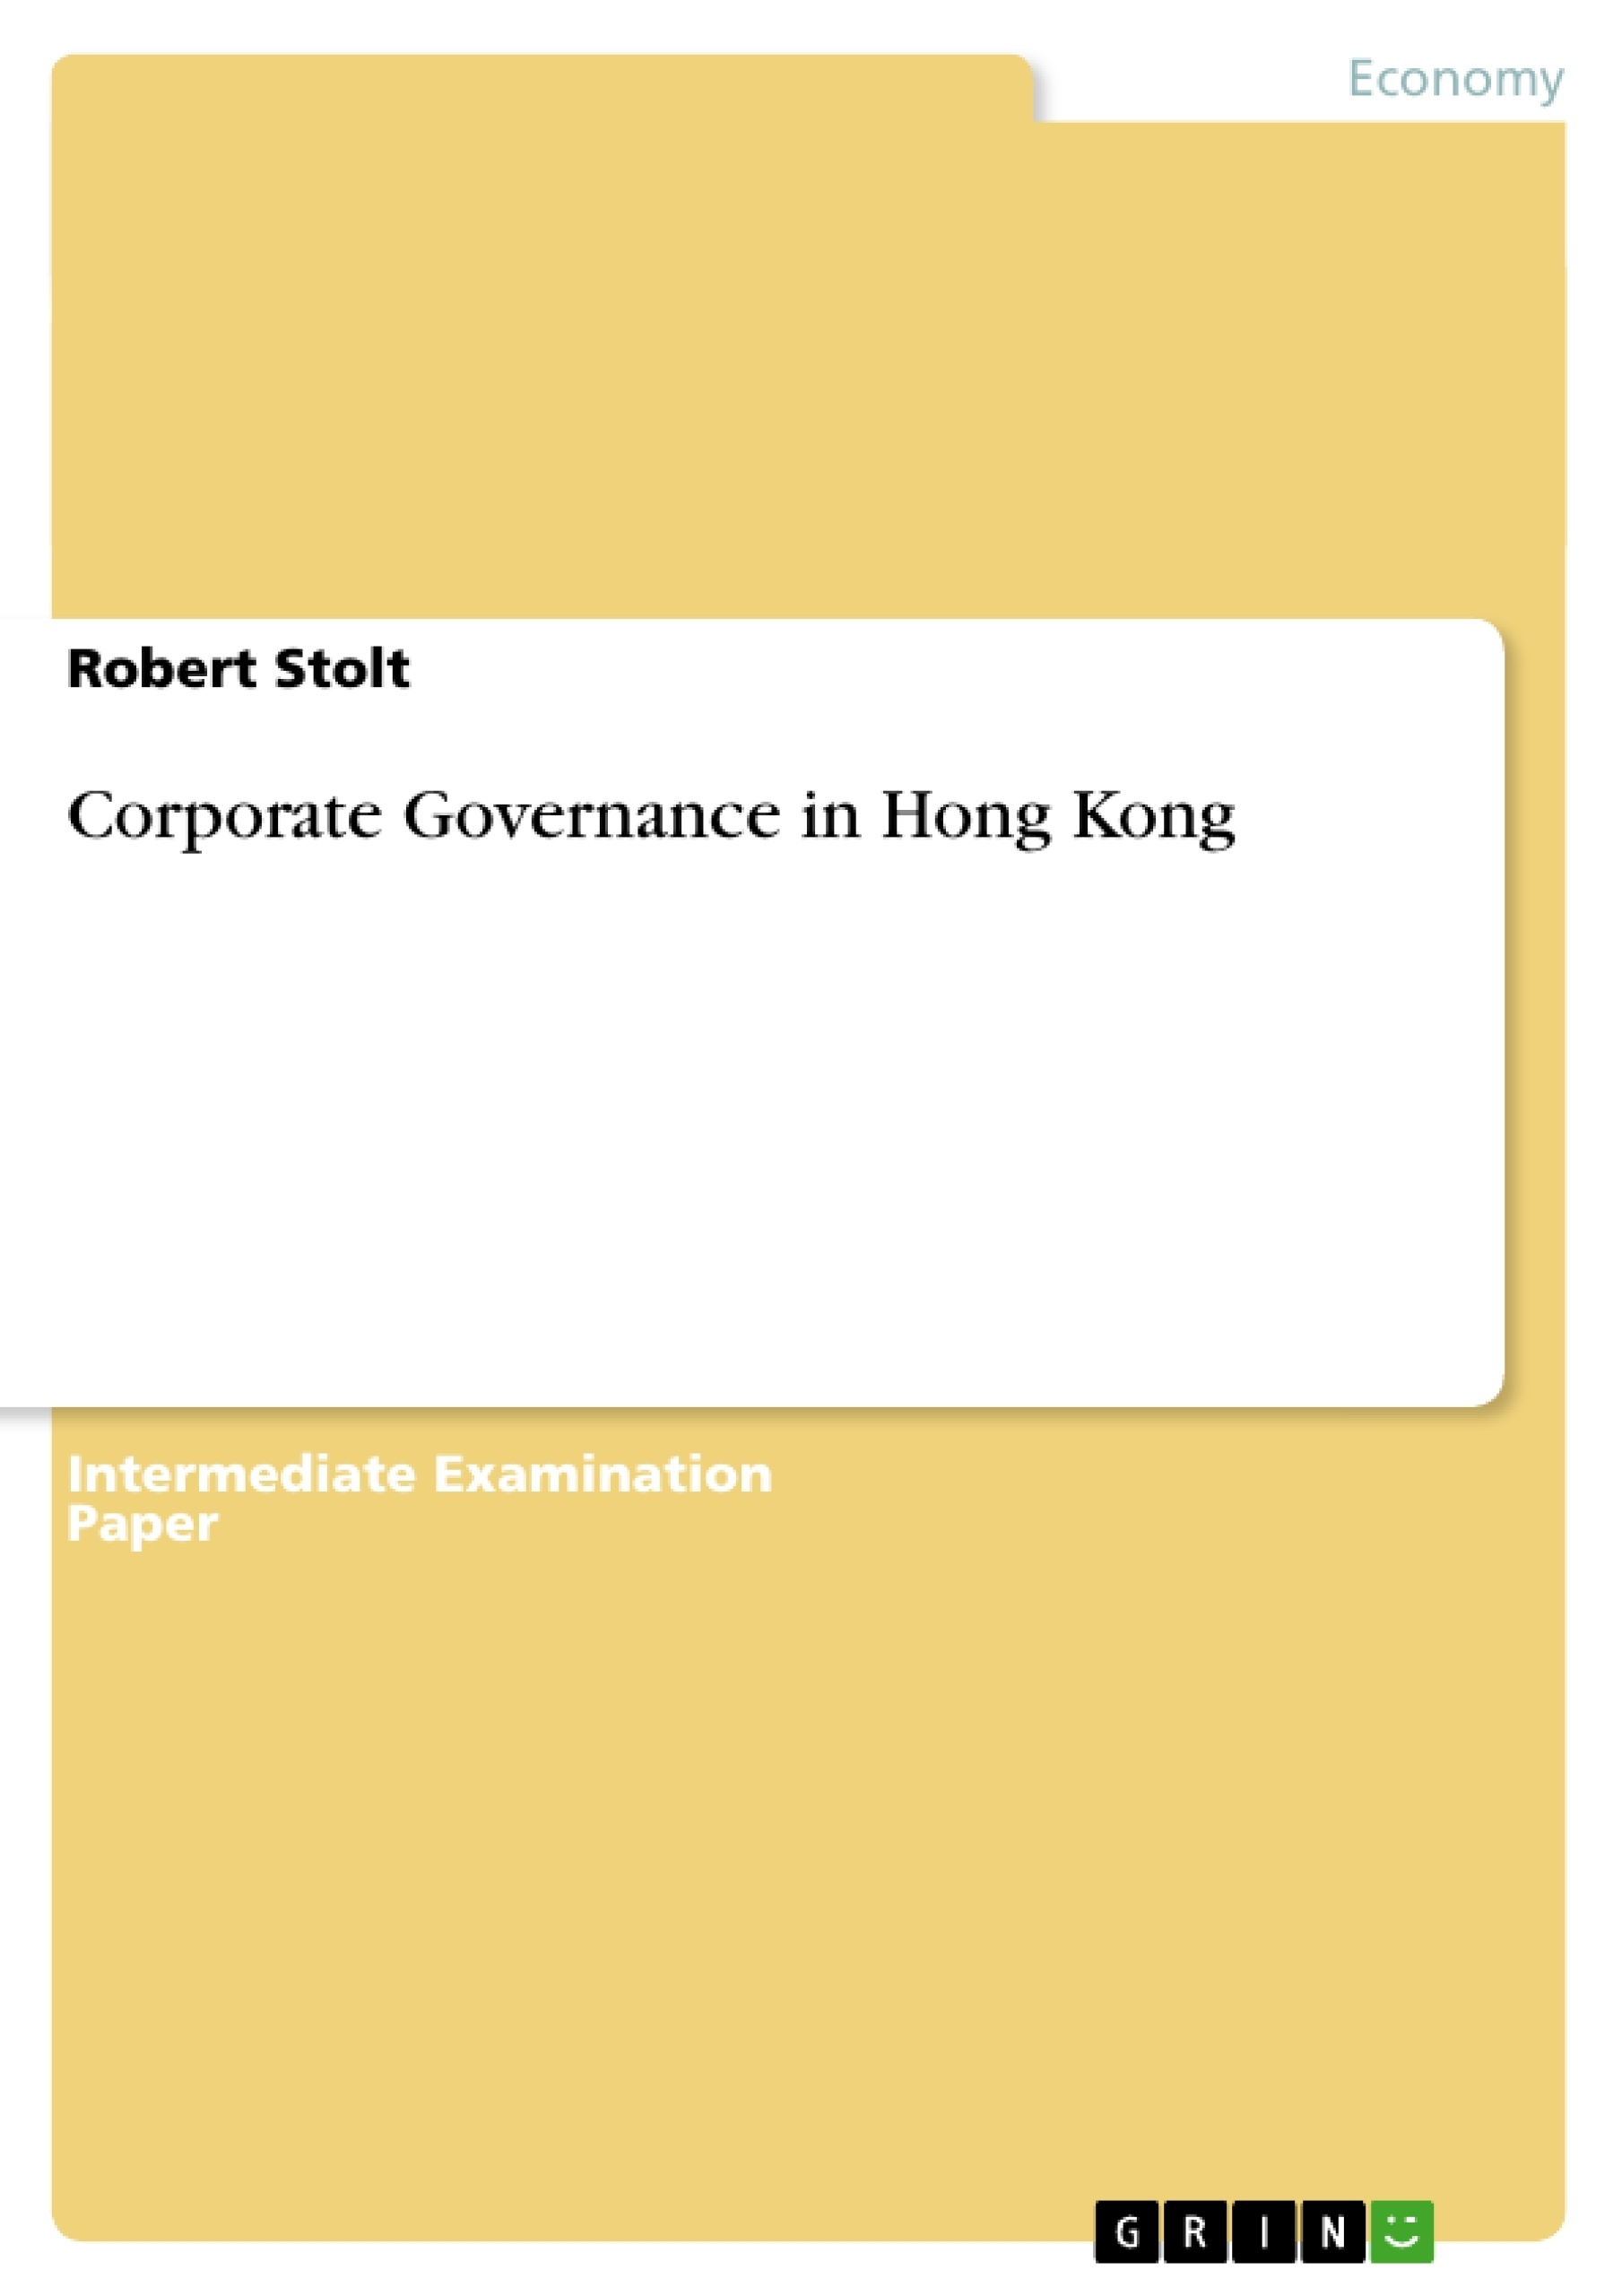 Title: Corporate Governance in Hong Kong